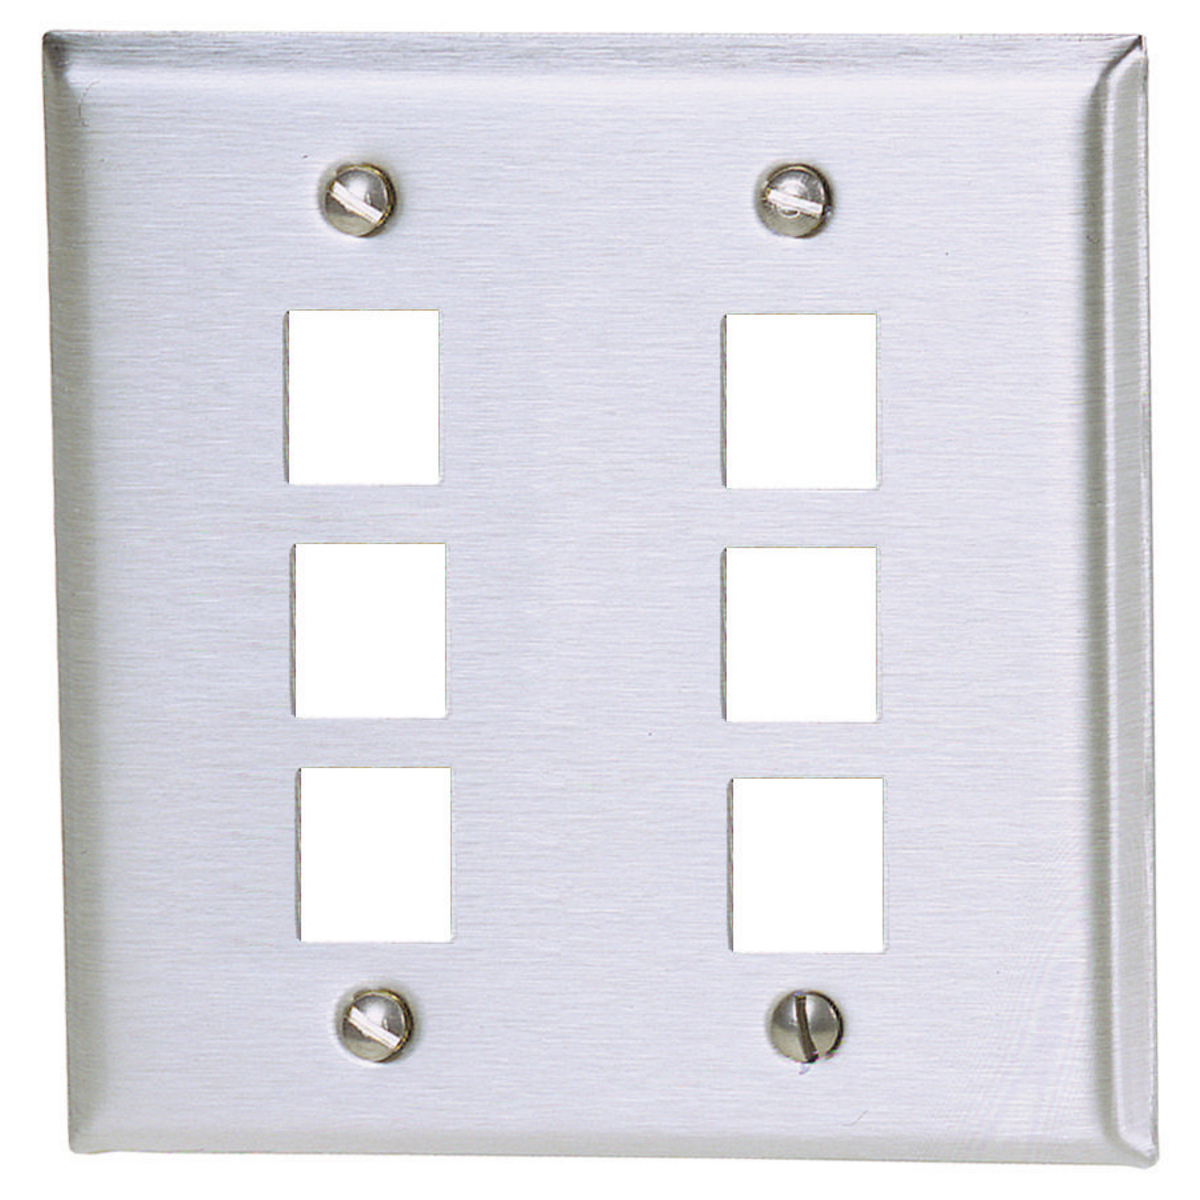 Hubbell Premise Wiring Ssf206 Wall Plate,6 Port